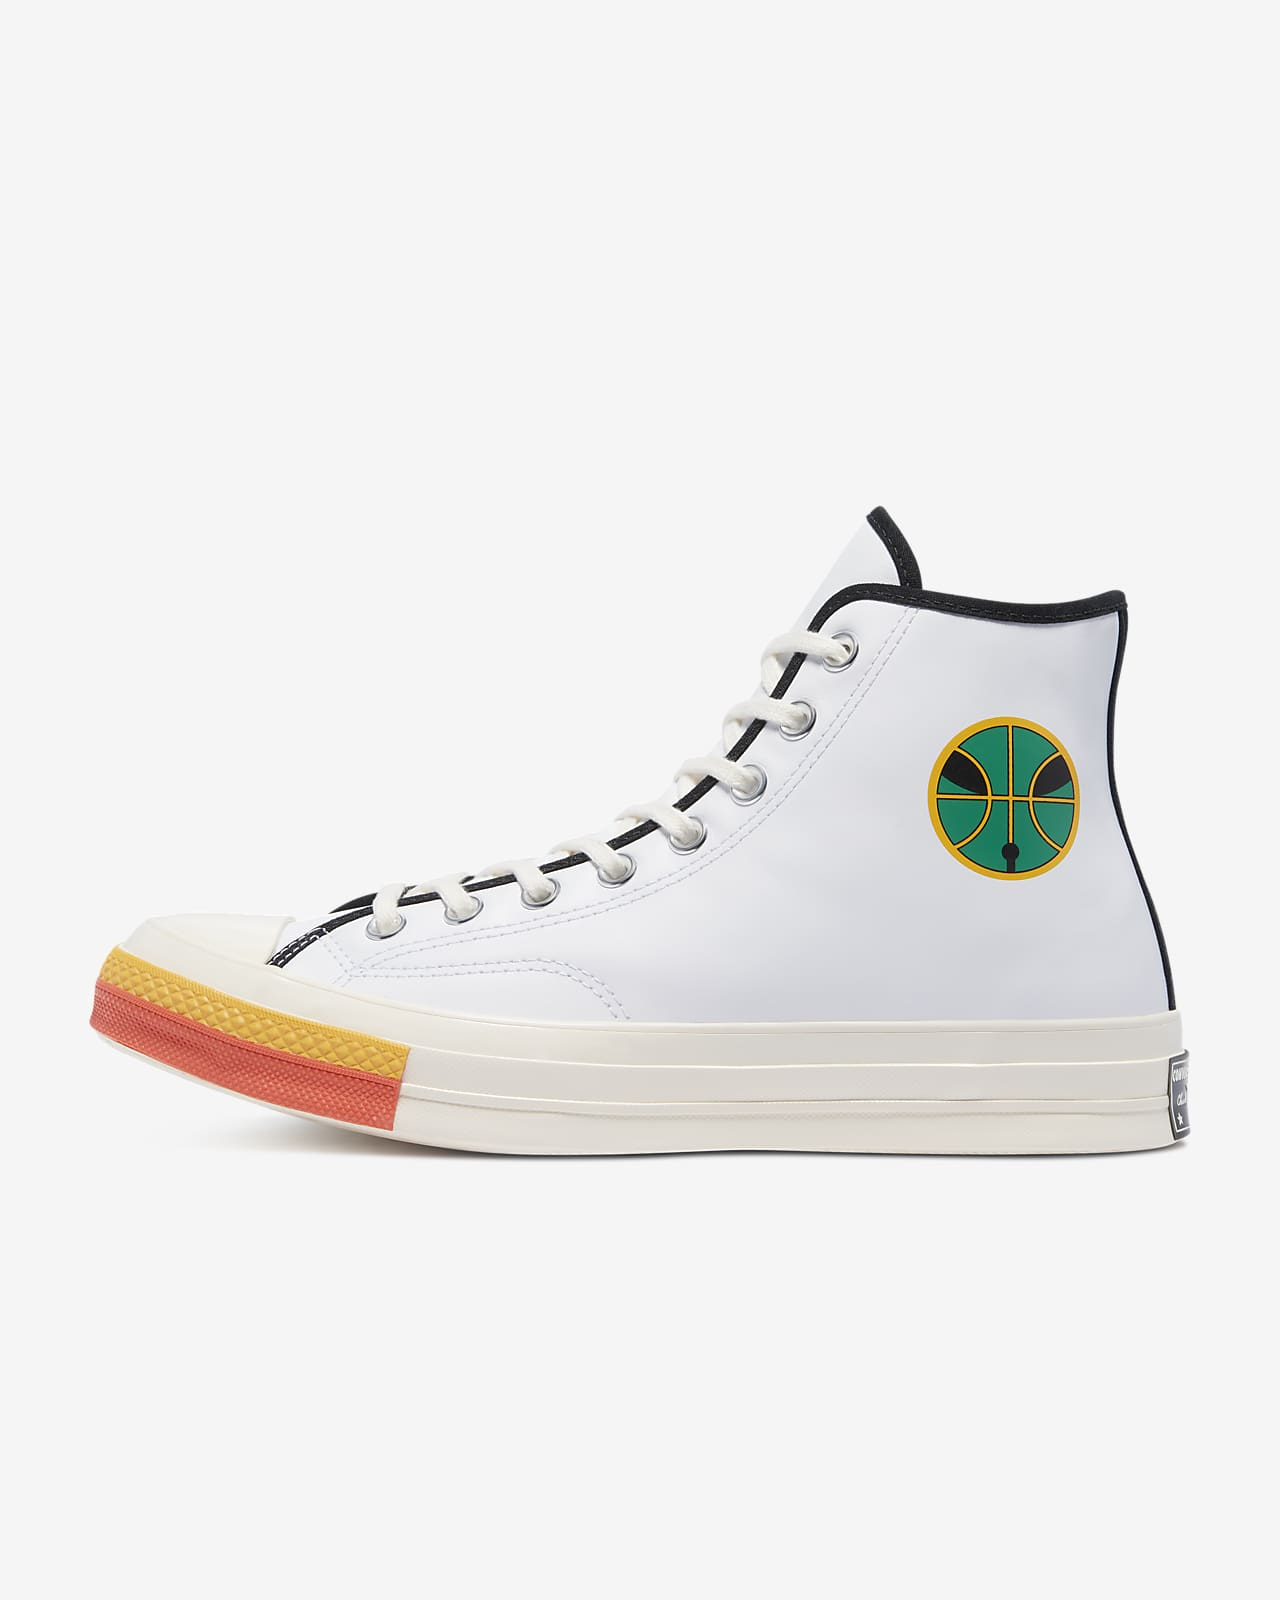 Roswell Rayguns Chuck 70 Shoe